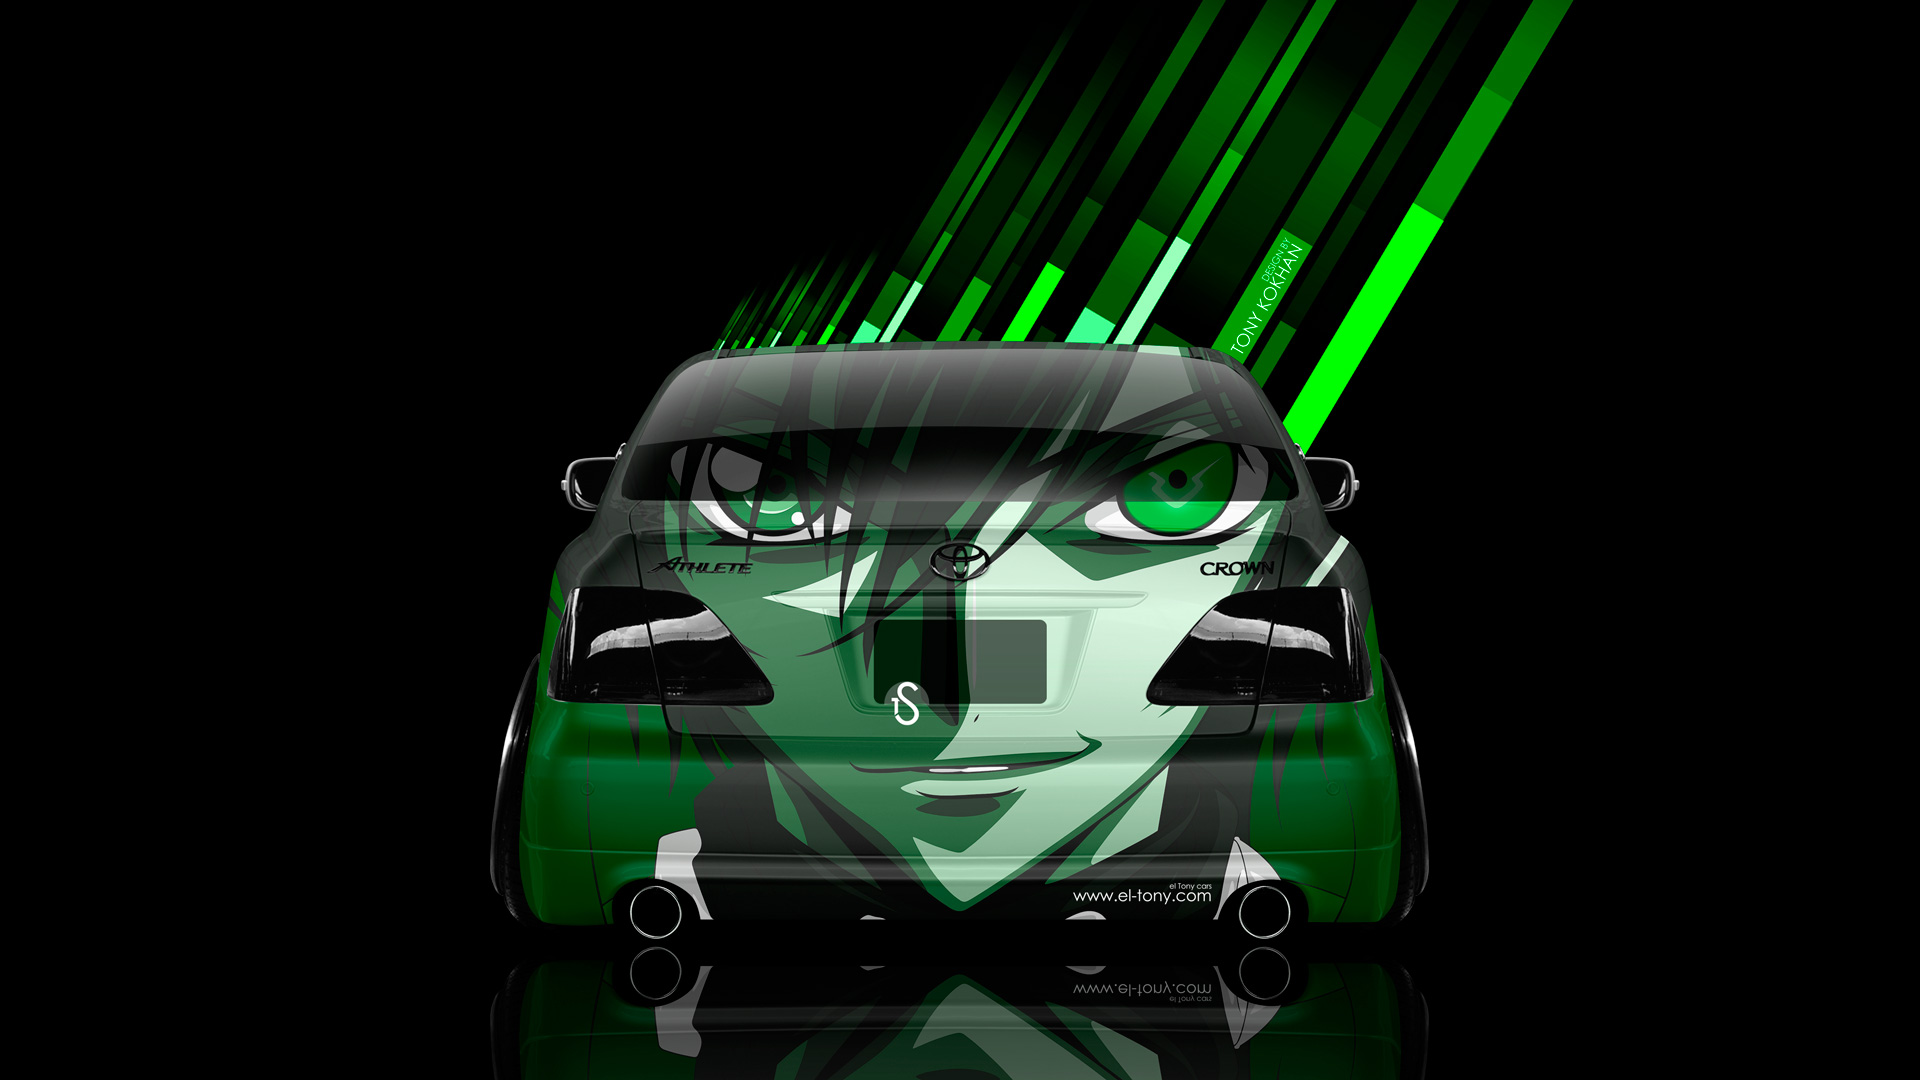 Toyota-Crown-Athlete-JDM-Back-Anime-Aerography-Car-2014-Green-Colors-HD-Wallpapers-design-by-Tony-Kokhan-[www.el-tony.com]